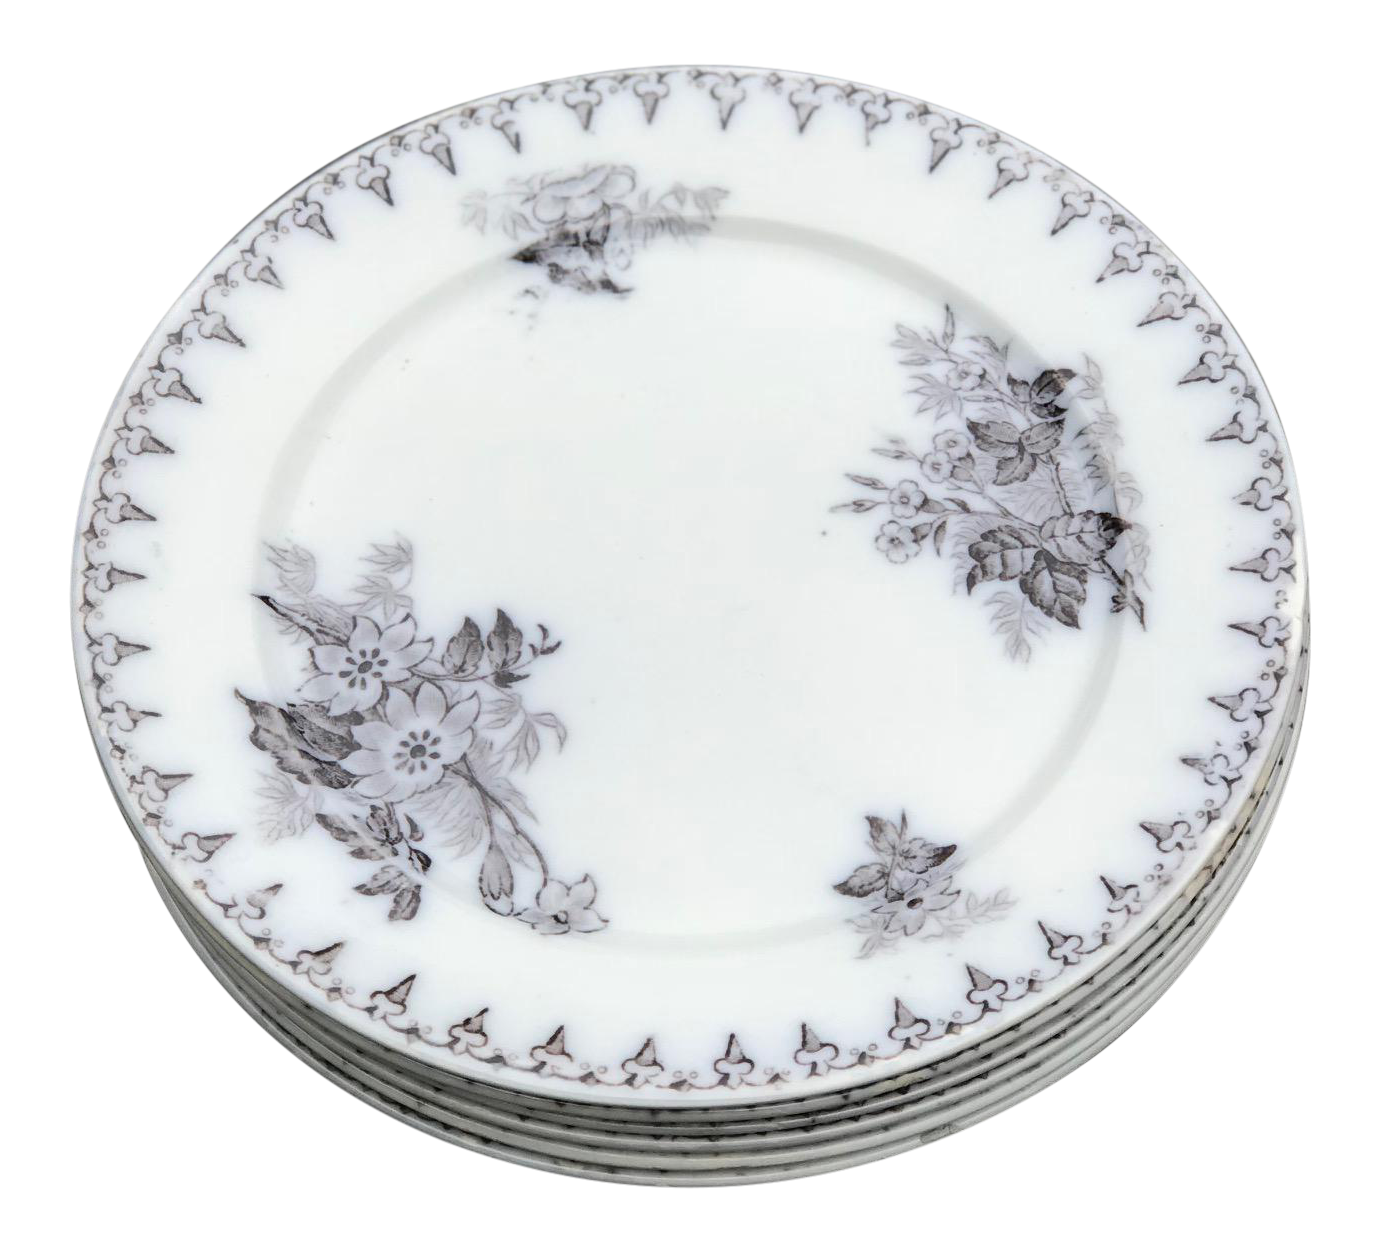 Antique Salad Plates - Set of 6  sc 1 st  Chairish : charcoal dinnerware - pezcame.com